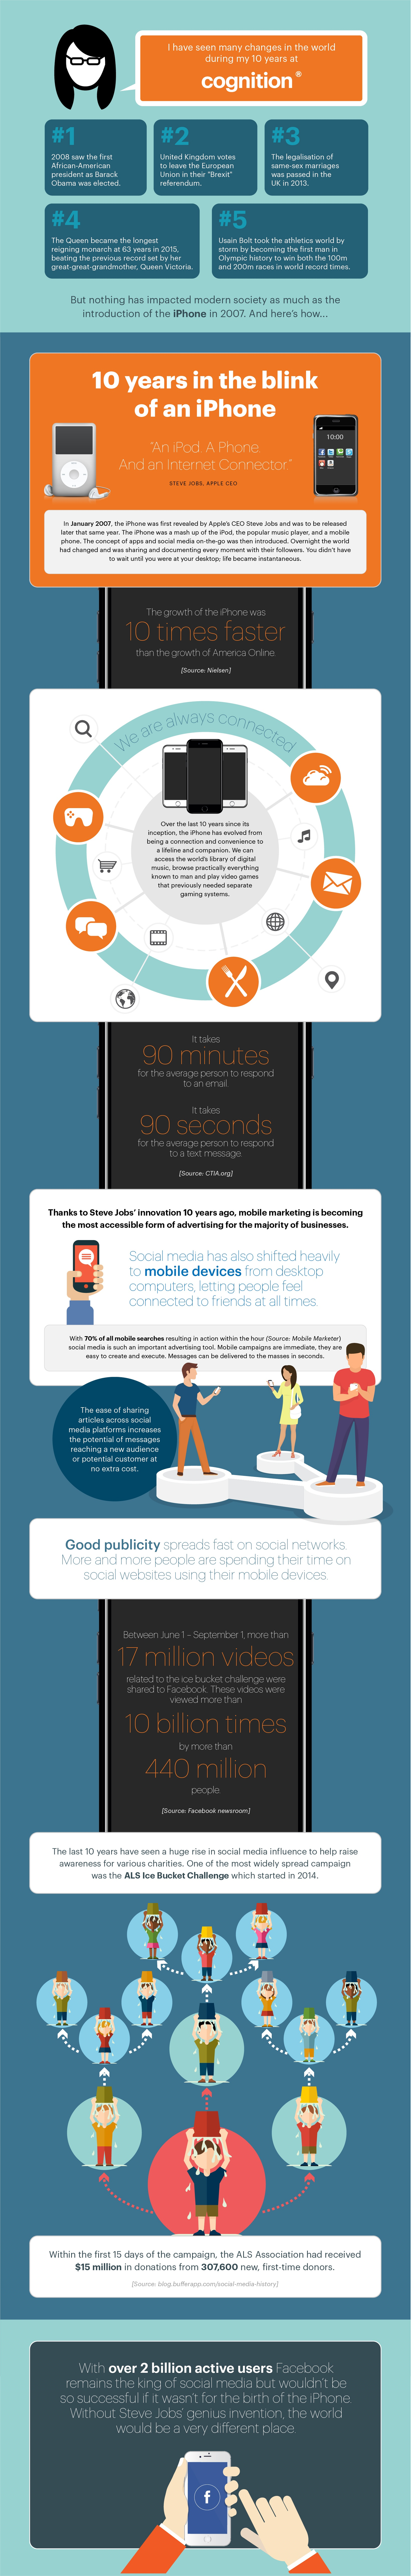 10yrs iPhone infographic_SEPT.jpg